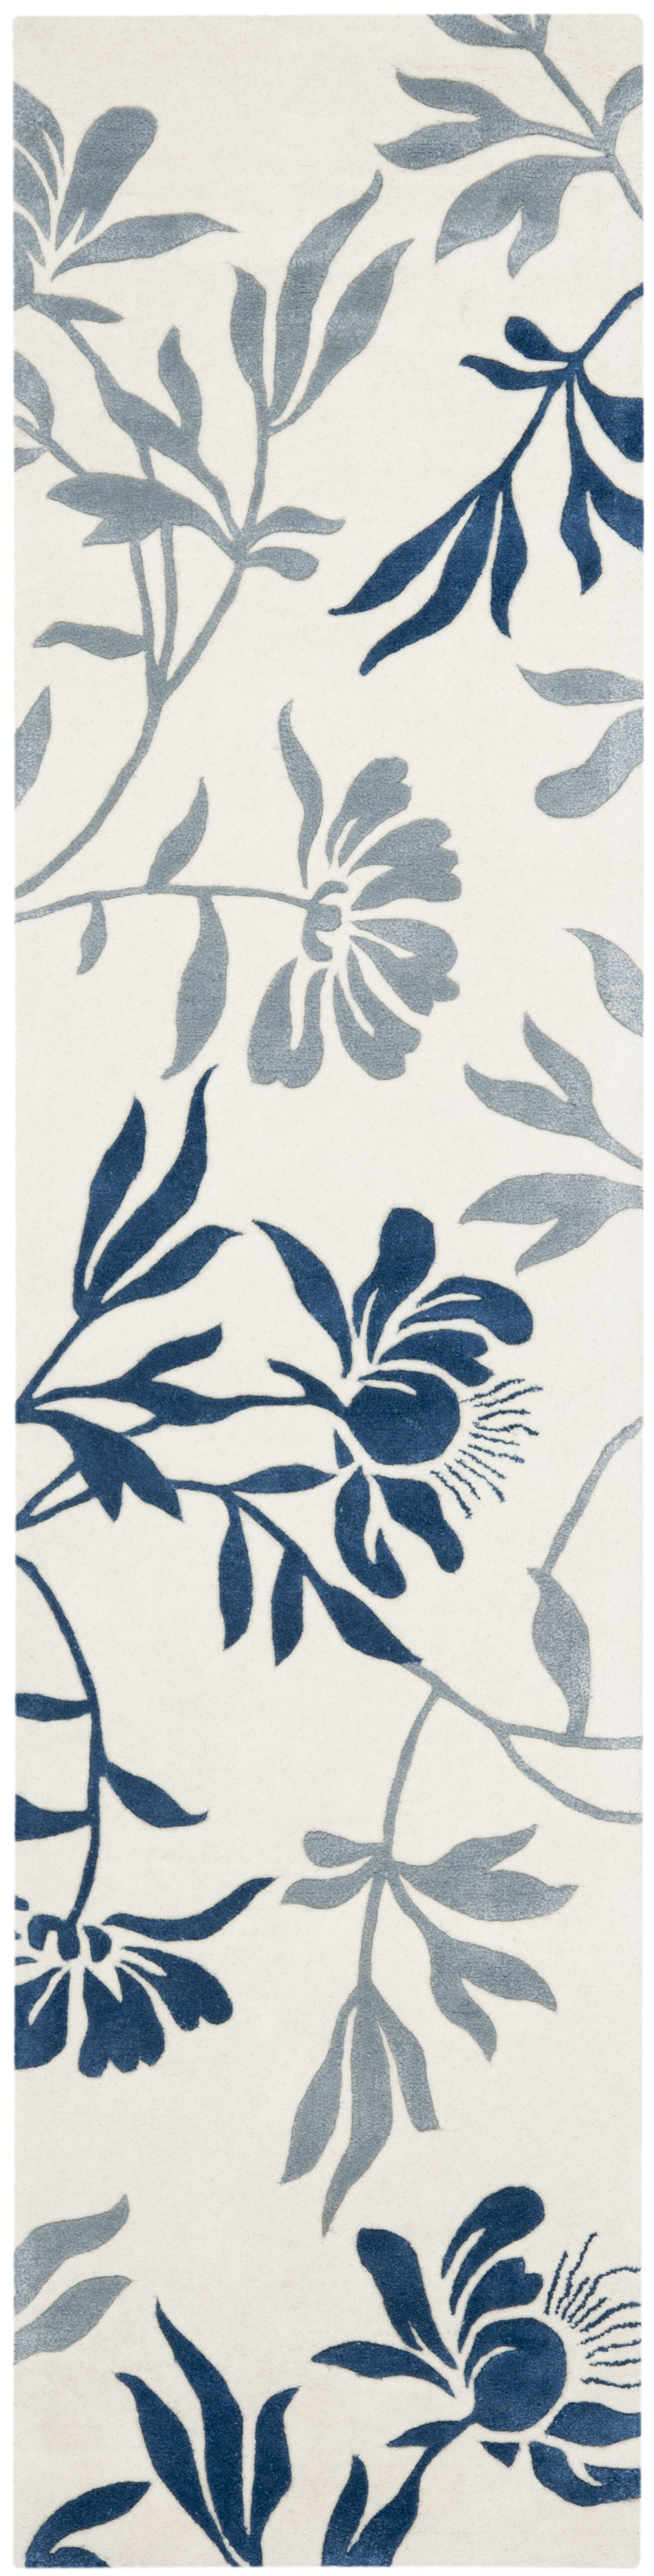 Trudie Hand-Woven Wool Ivory/Blue Area Rug Rug Size: Runner 2'3